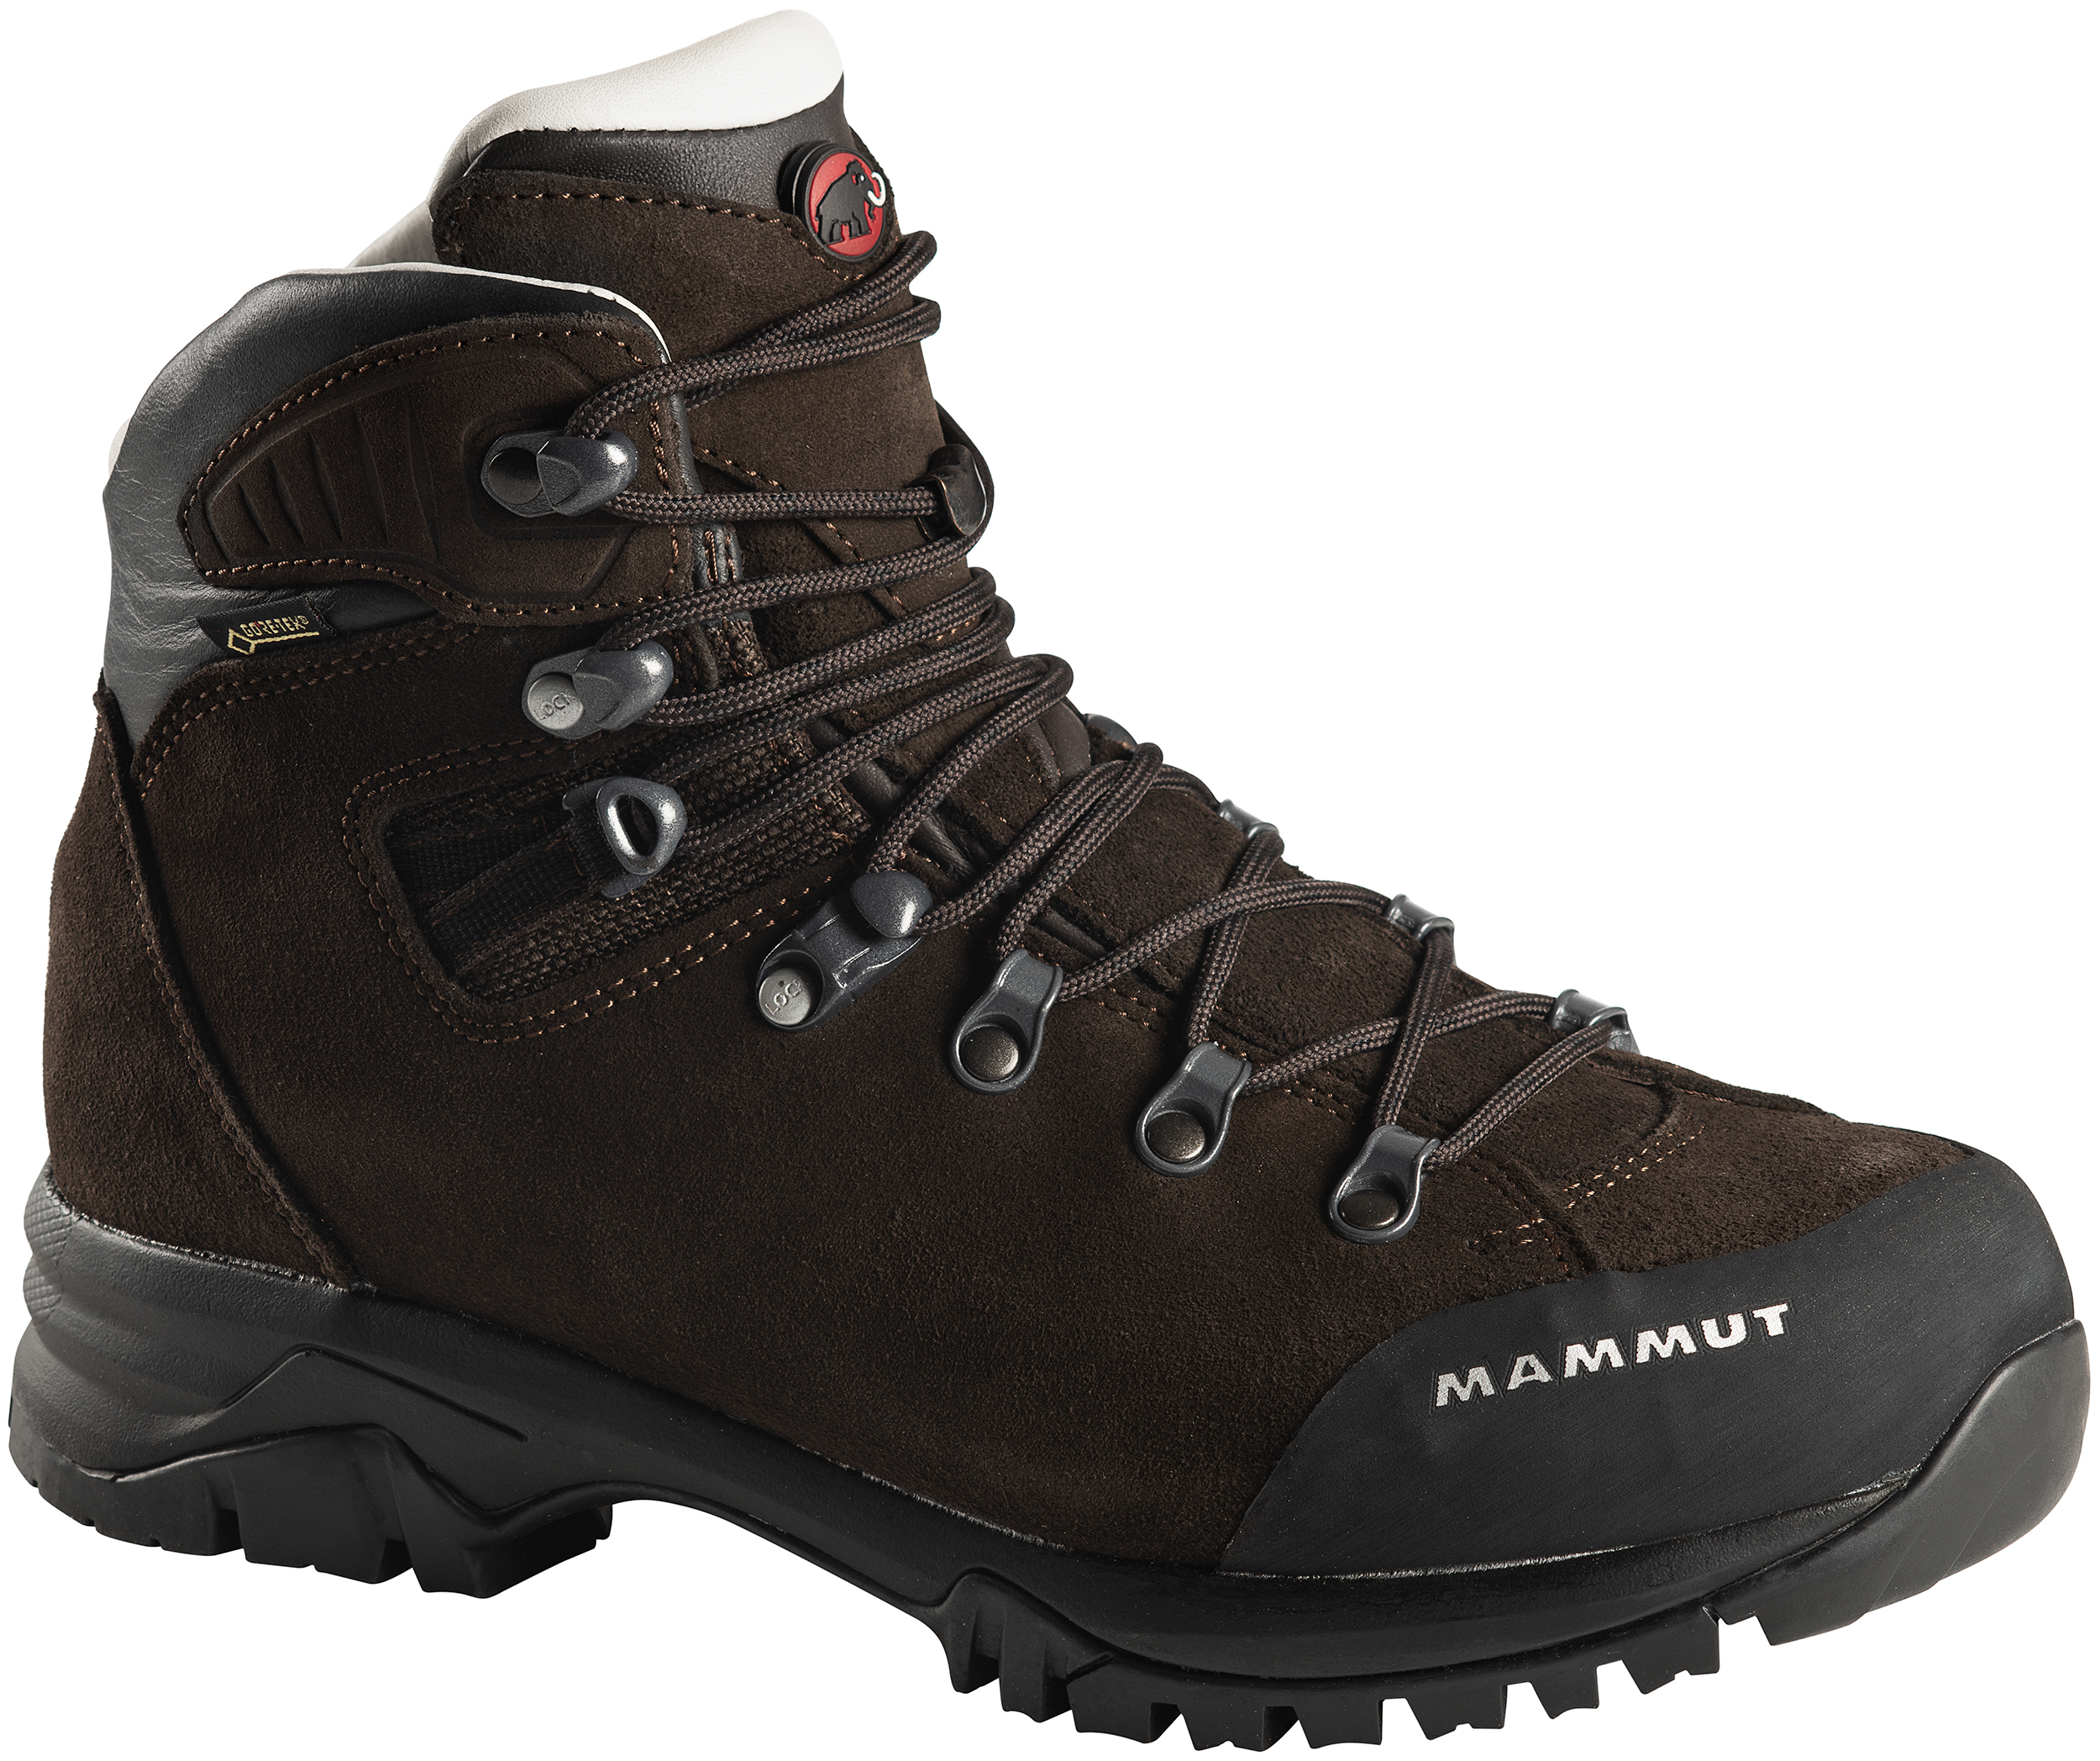 ff535922d5b Hiking boots | MEC